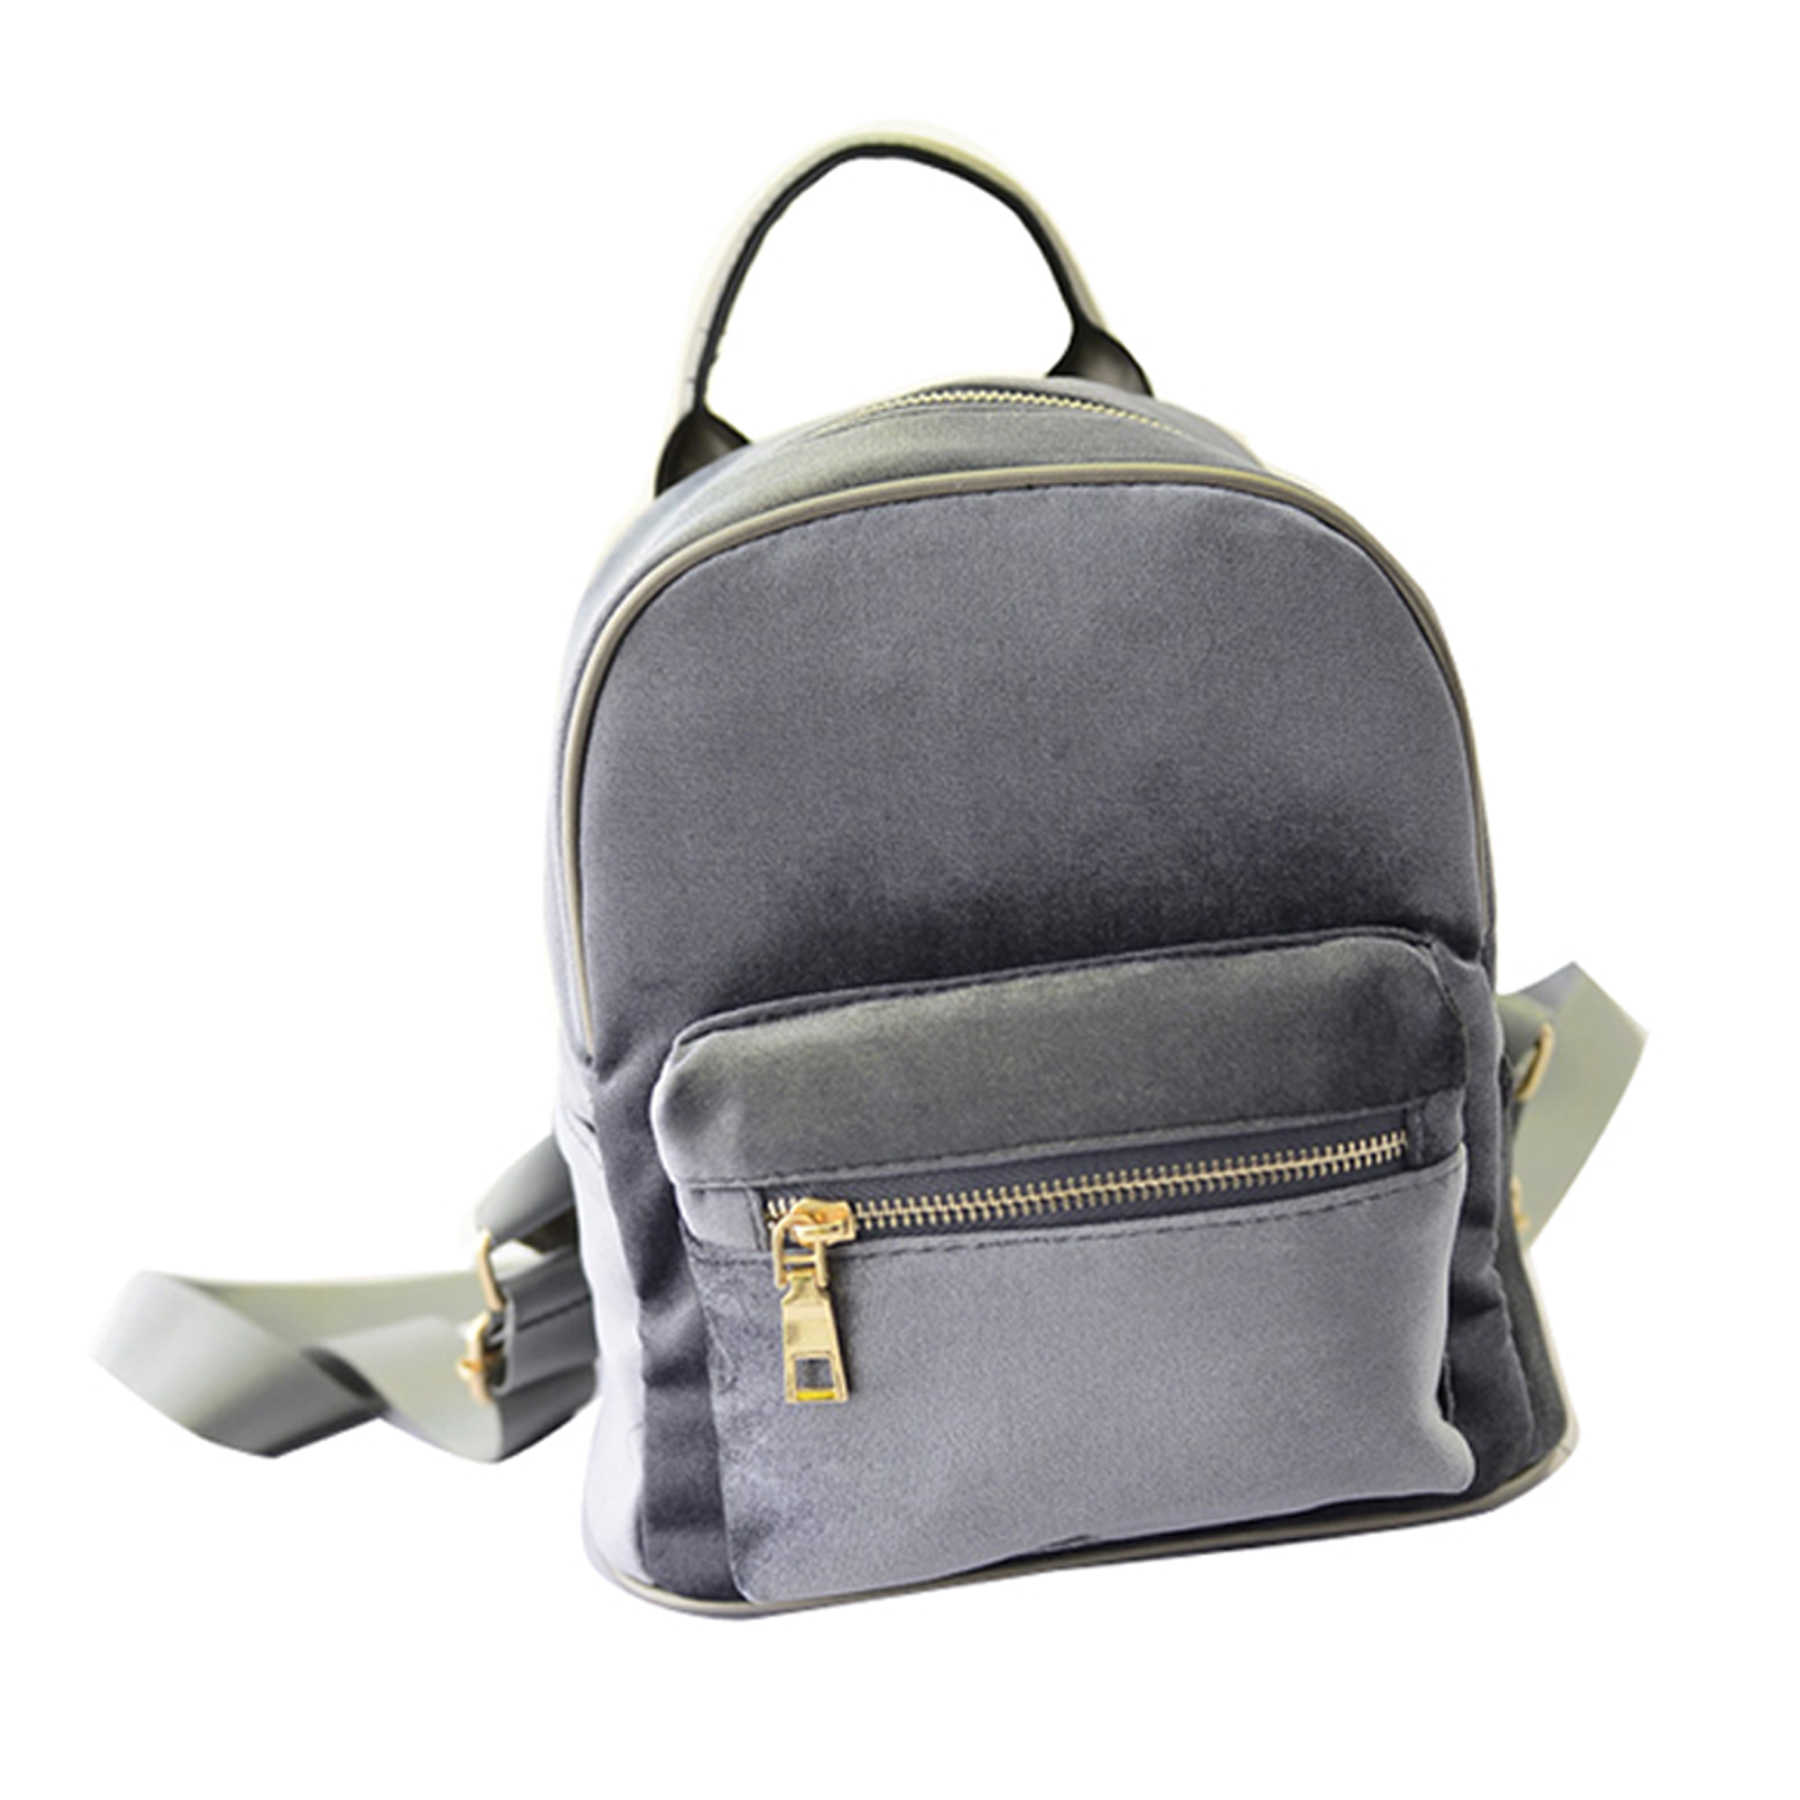 2156fe9a32 Women Small Backpack Student Fishion Mini Velvet Zipper bag High Quality  Casual Small light Girl School